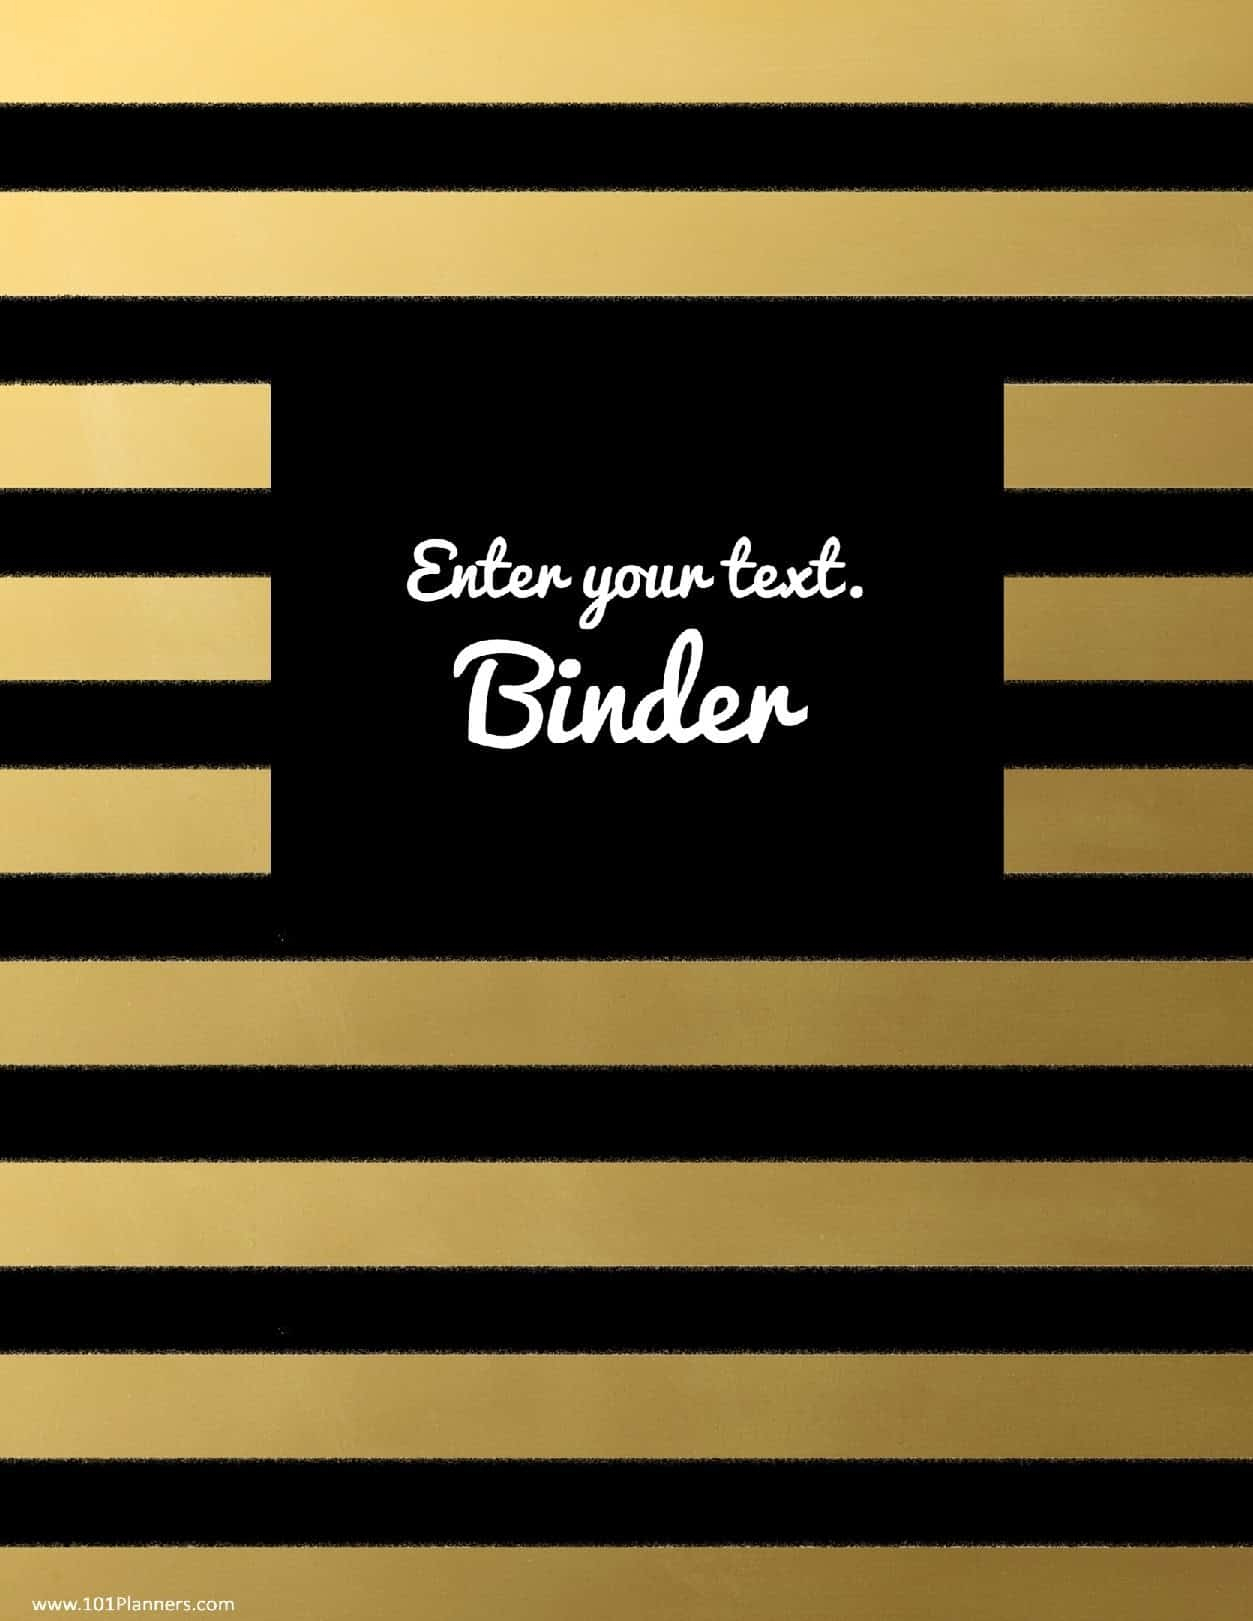 Free Binder Cover Templates | Customize Online & Print At Home | Free! - Free Editable Printable Binder Covers